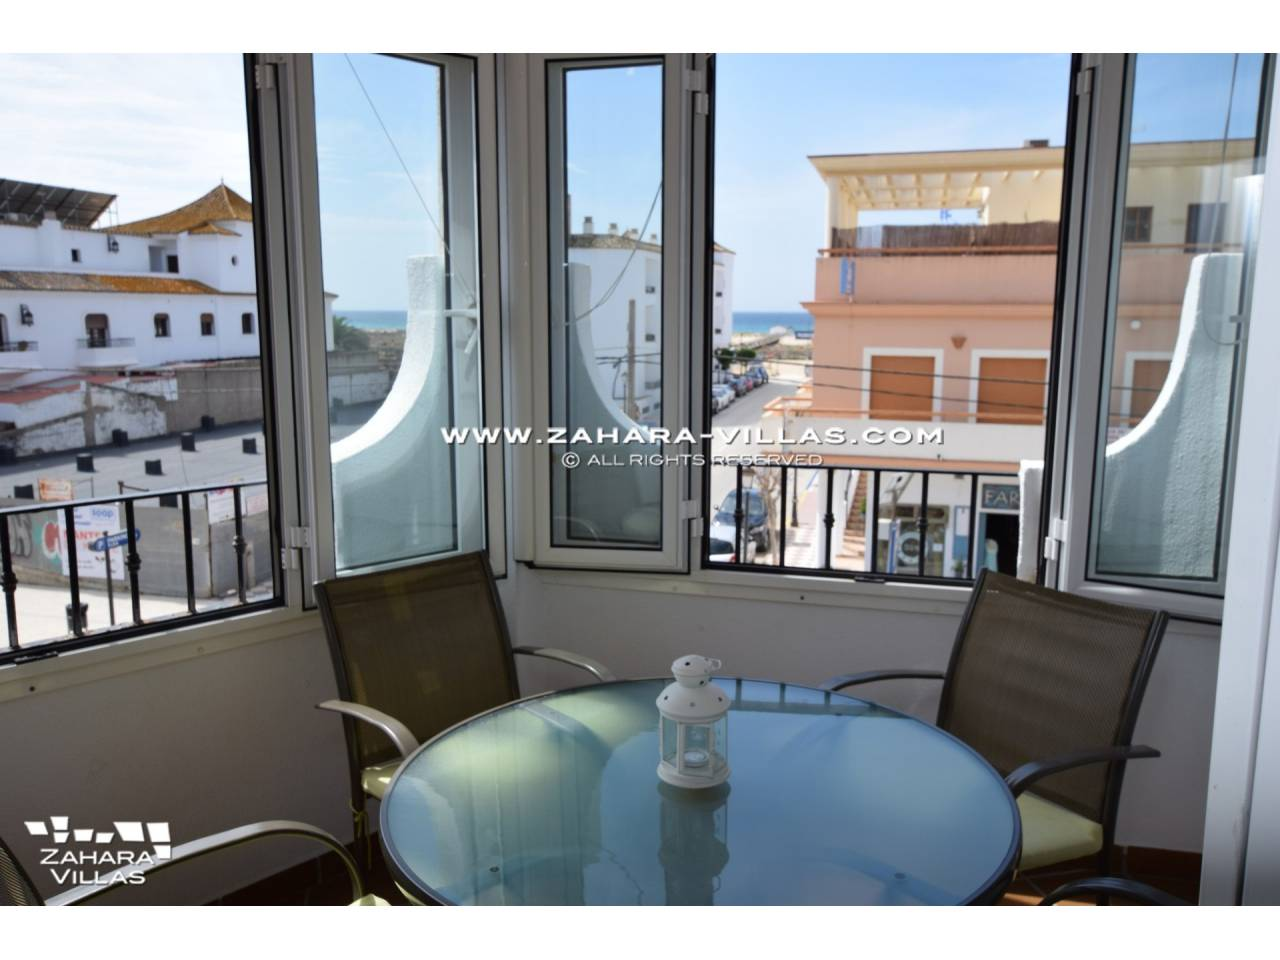 Imagen 4 de Amazing Apartment for sale in Zahara de los Atunes